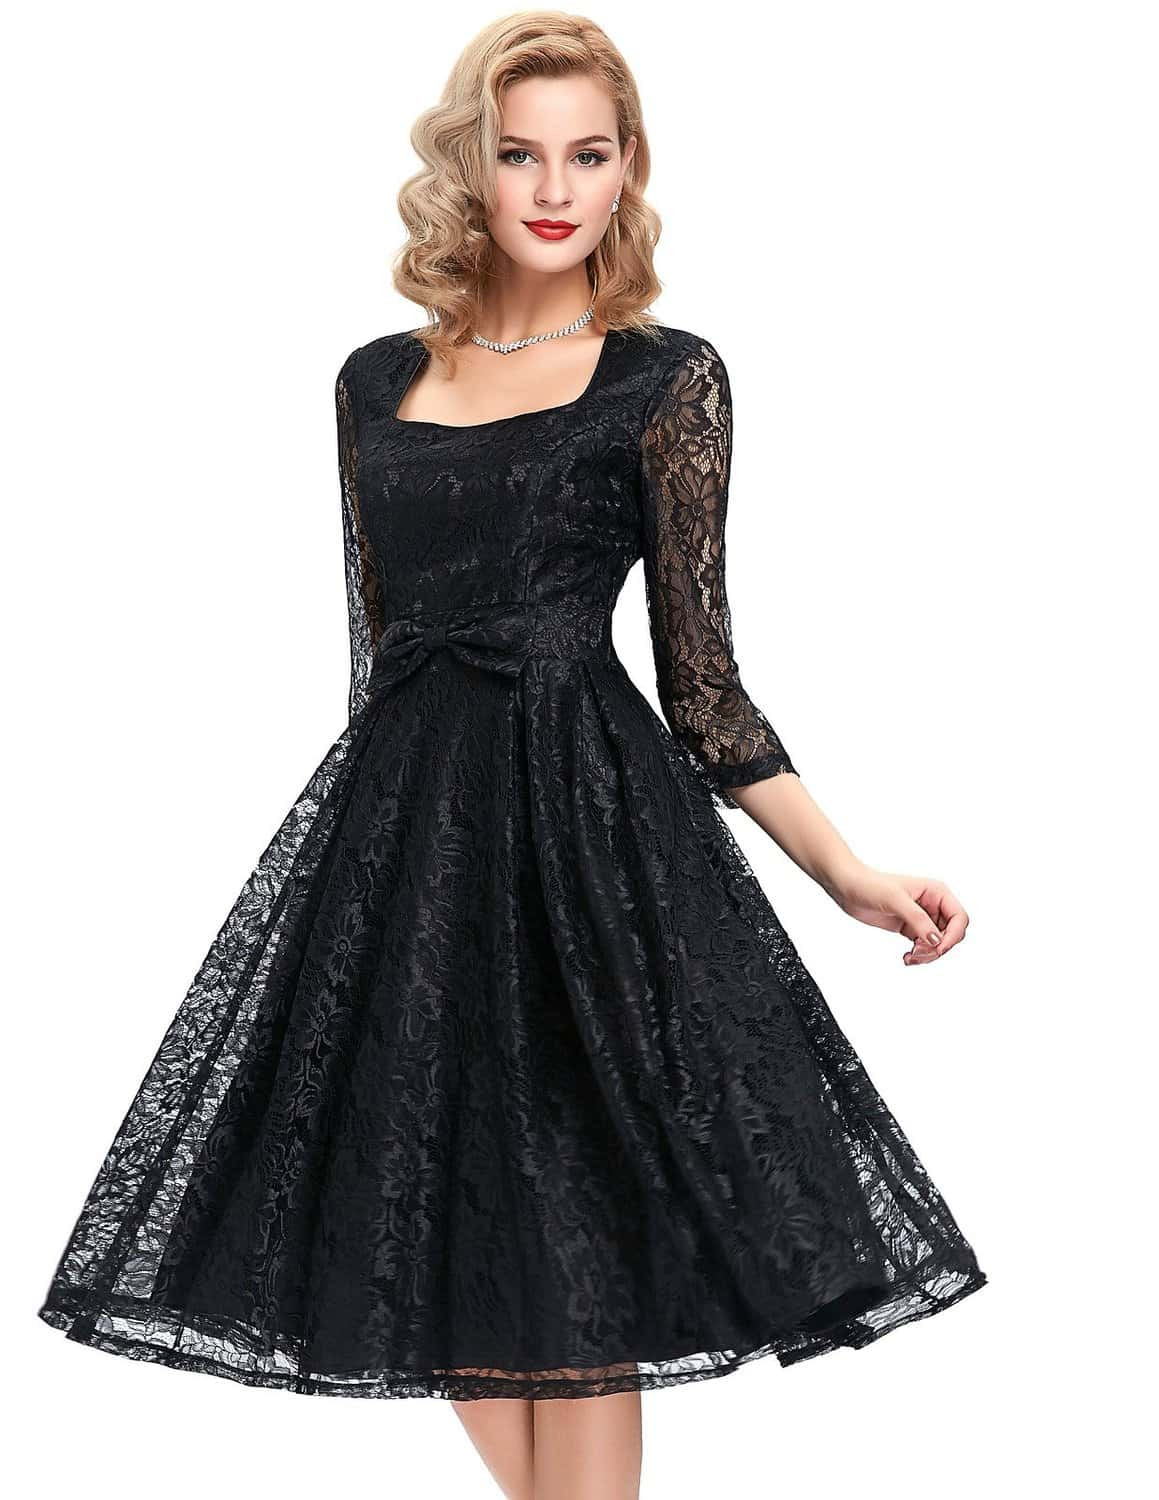 Rita Black Lace Dress | 1950sGlam